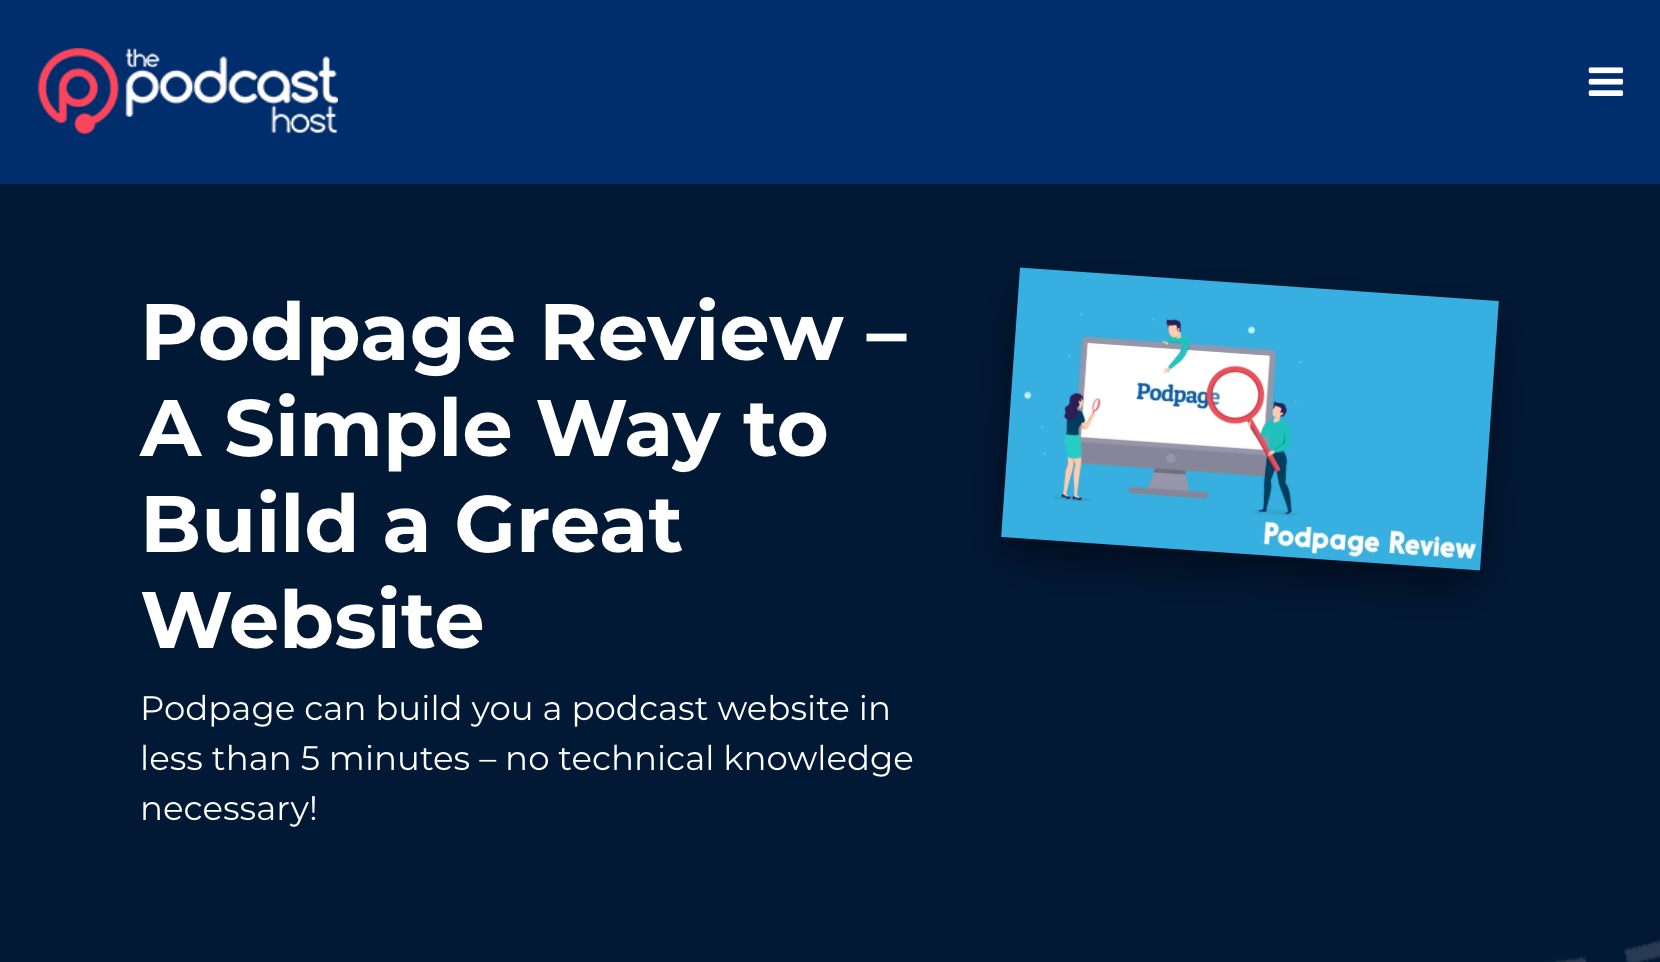 The Podcast Host reviewed Podpage! image